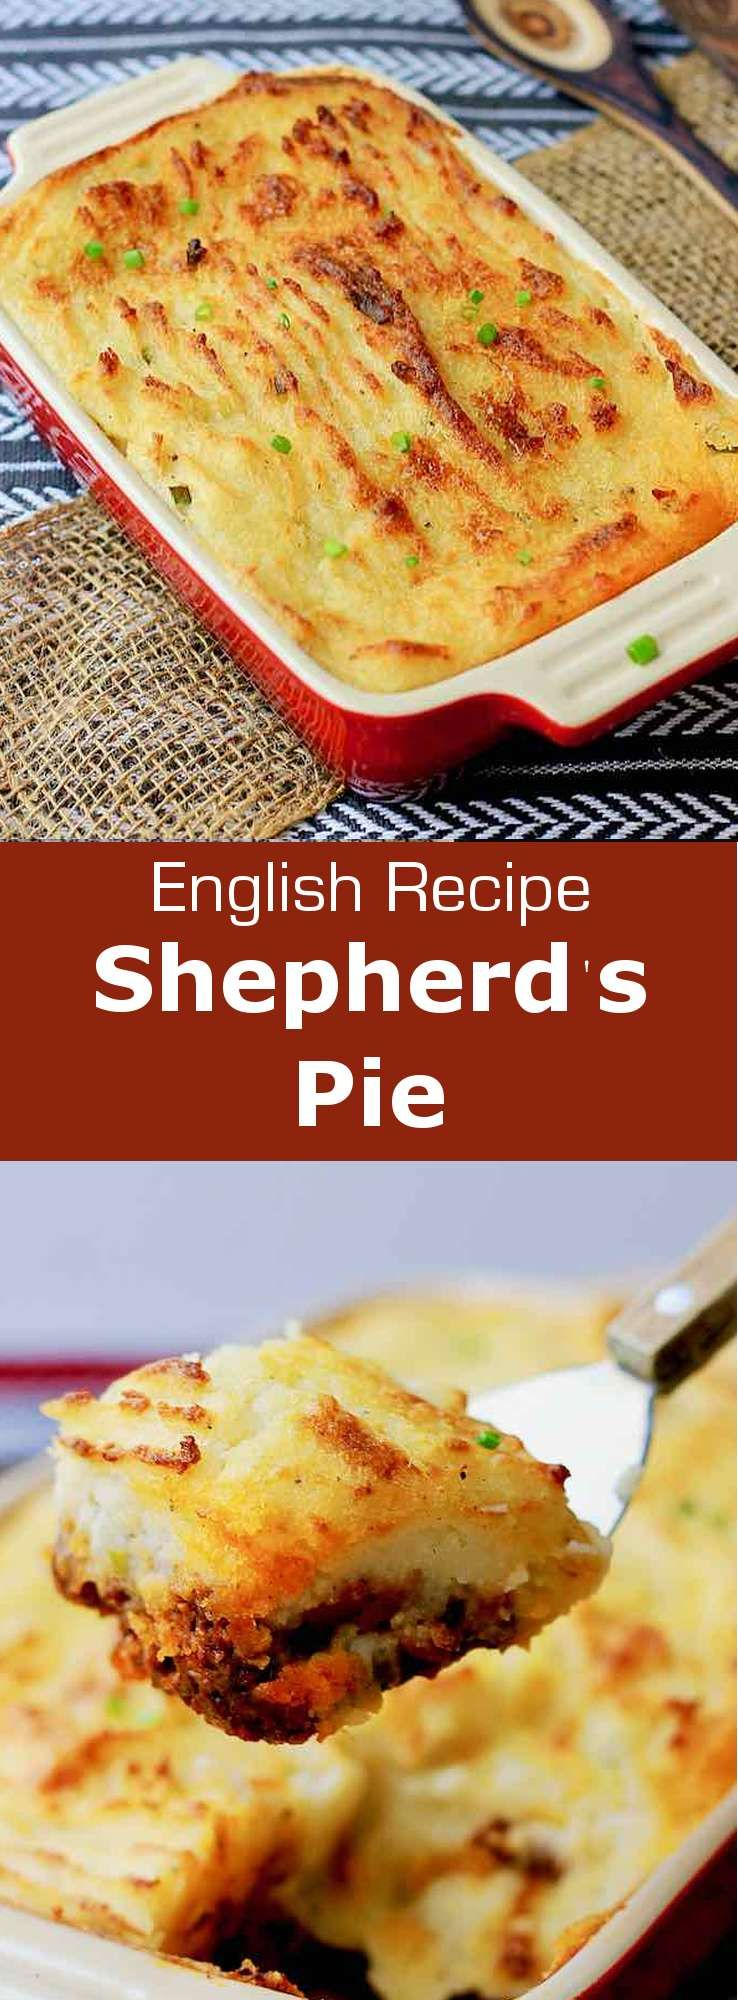 Shepherd's pie is a traditional British dish, made from lamb or mutton and mashed potatoes that is similar to French hachis parmentier. #UnitedKingdom #EnglishCuisine #BritishCuisine #EnglishFood #BritishFood #EnglishRecipe #BritishRecipe #WorldCuisine #196flavors #shepardspie